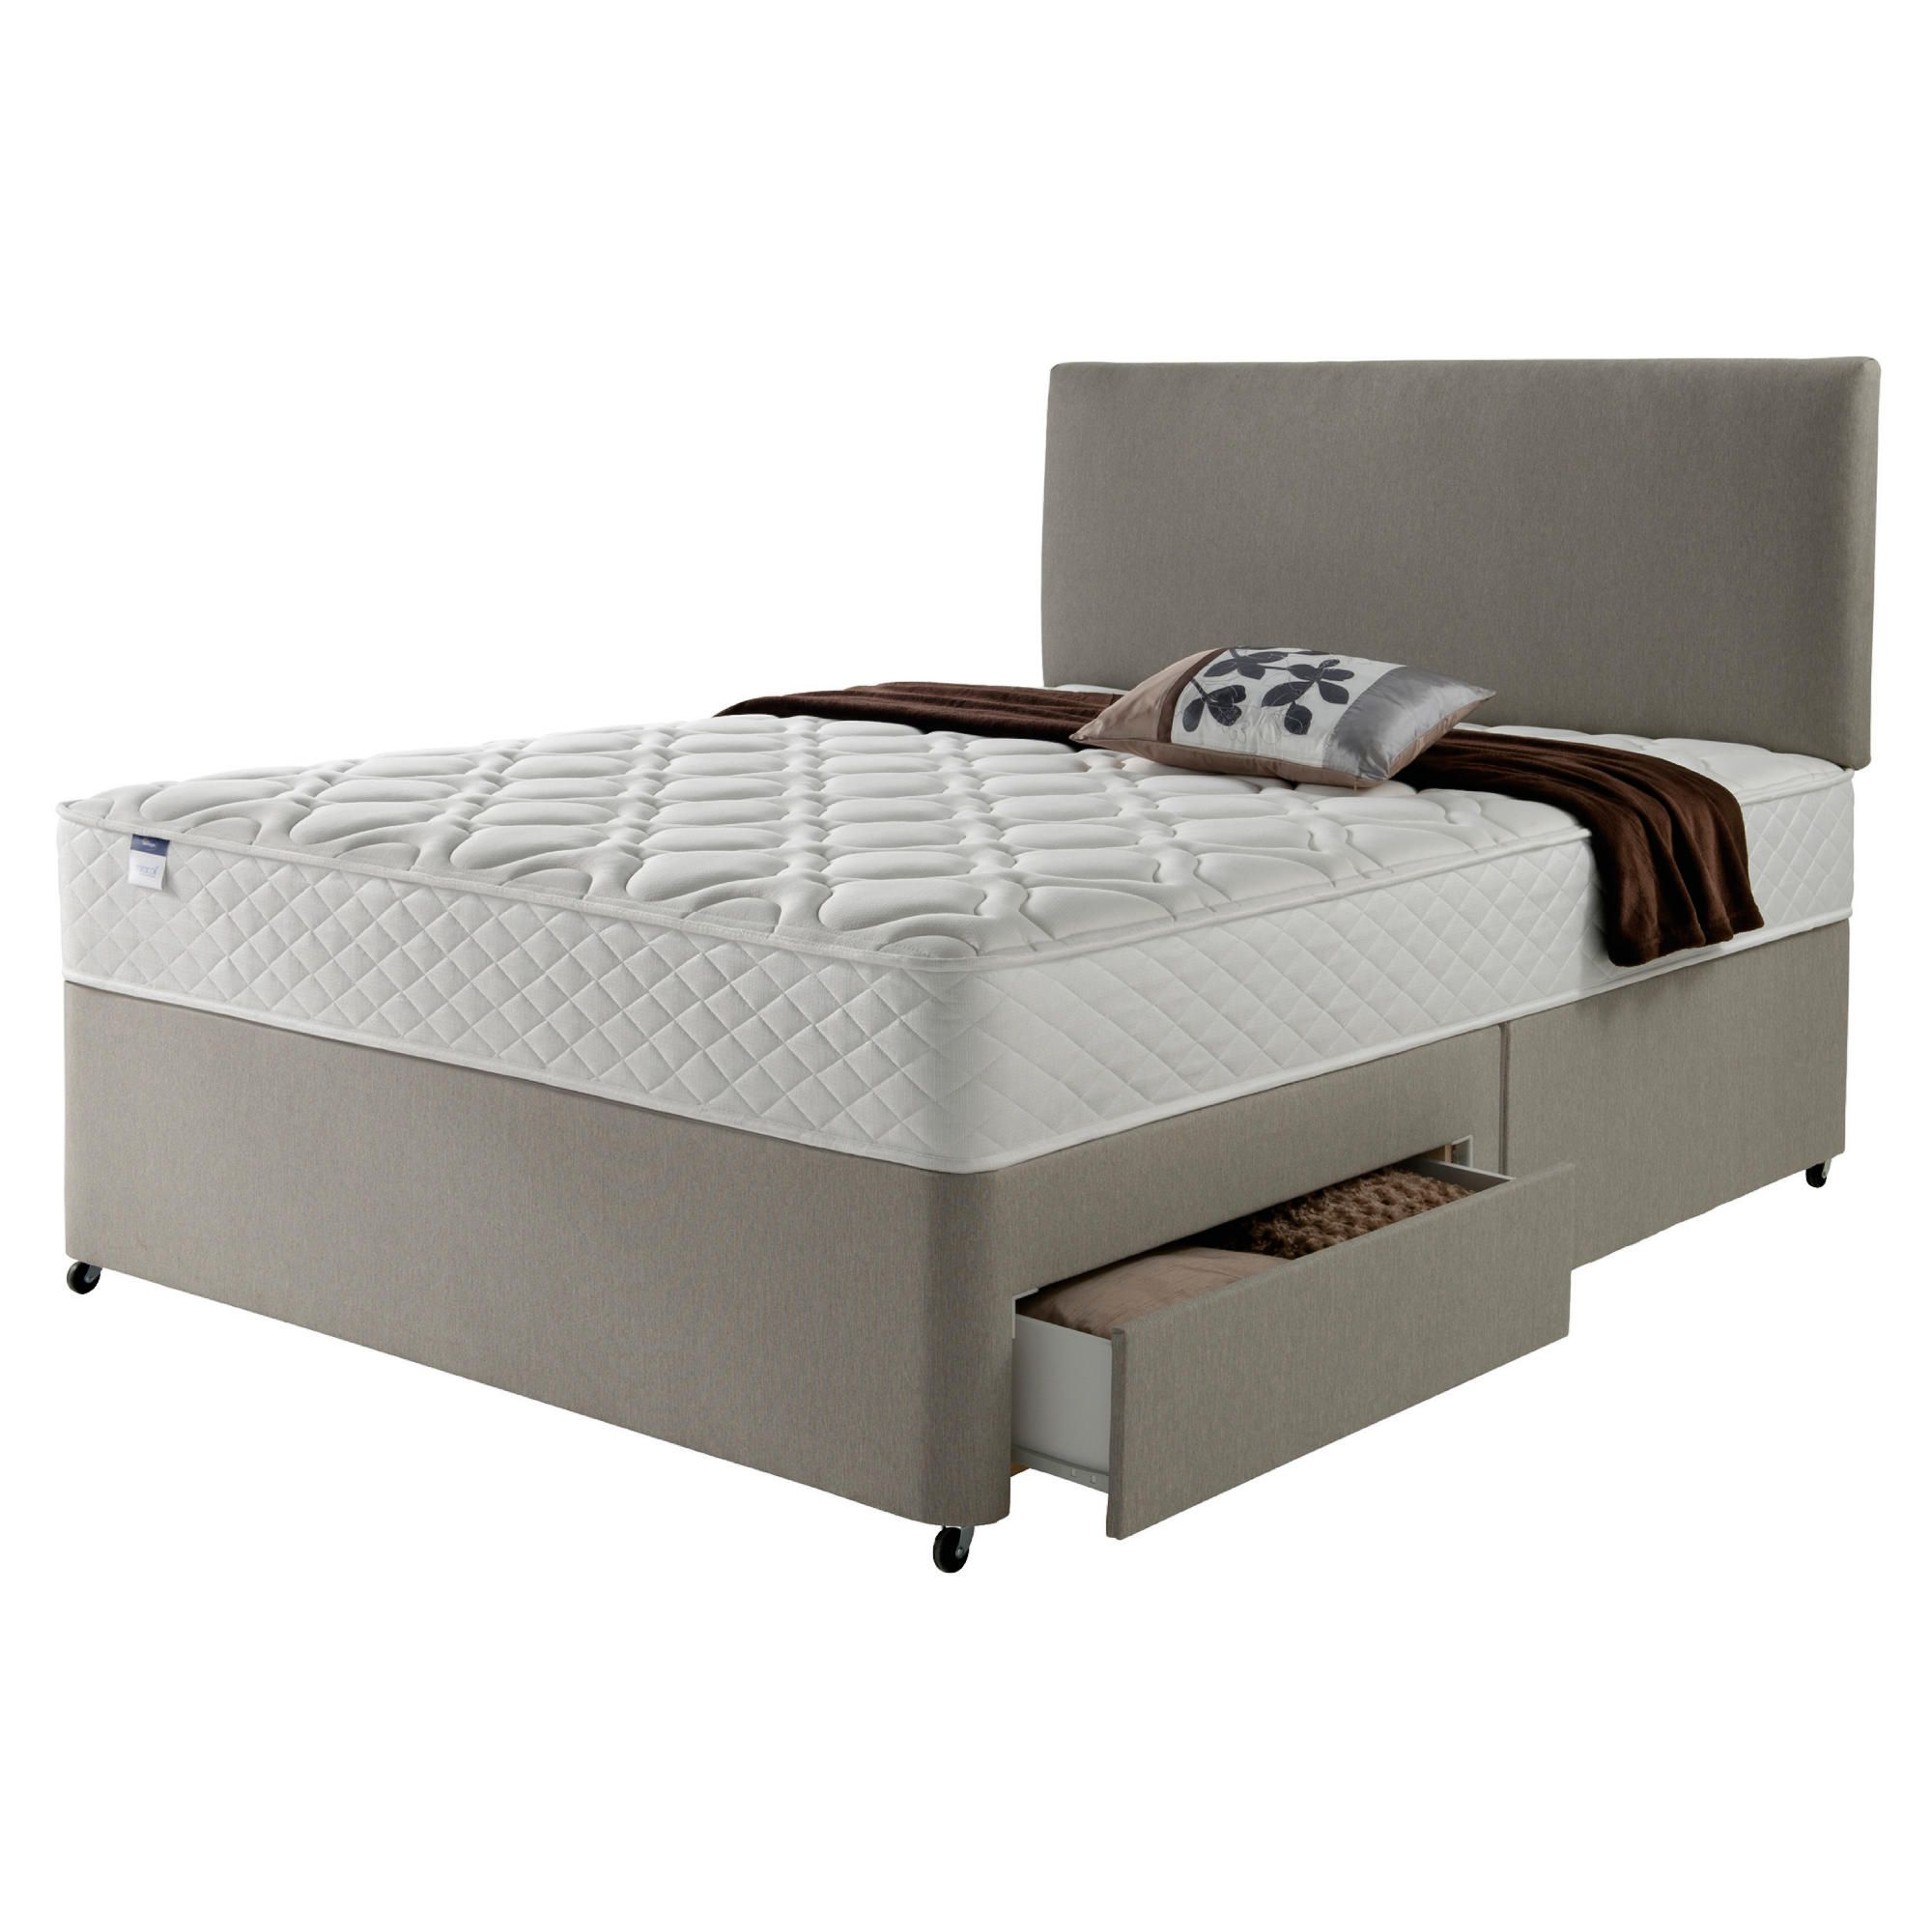 Silentnight Miracoil Luxury Micro Quilt 4 Drawer Super King Divan Mink with Headboard at Tesco Direct